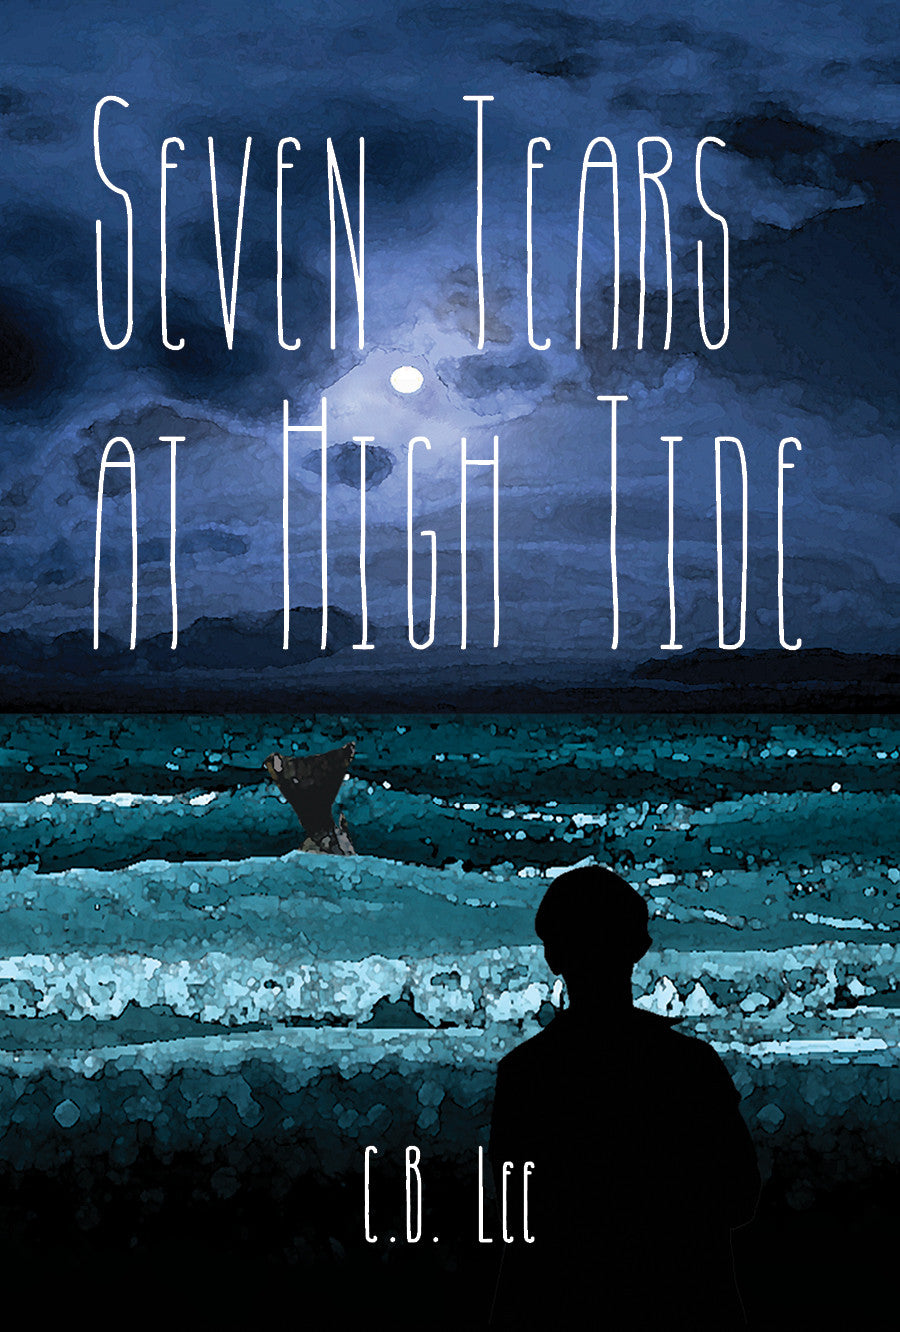 Seven Tears at High Tide by C.B. Lee (print edition)